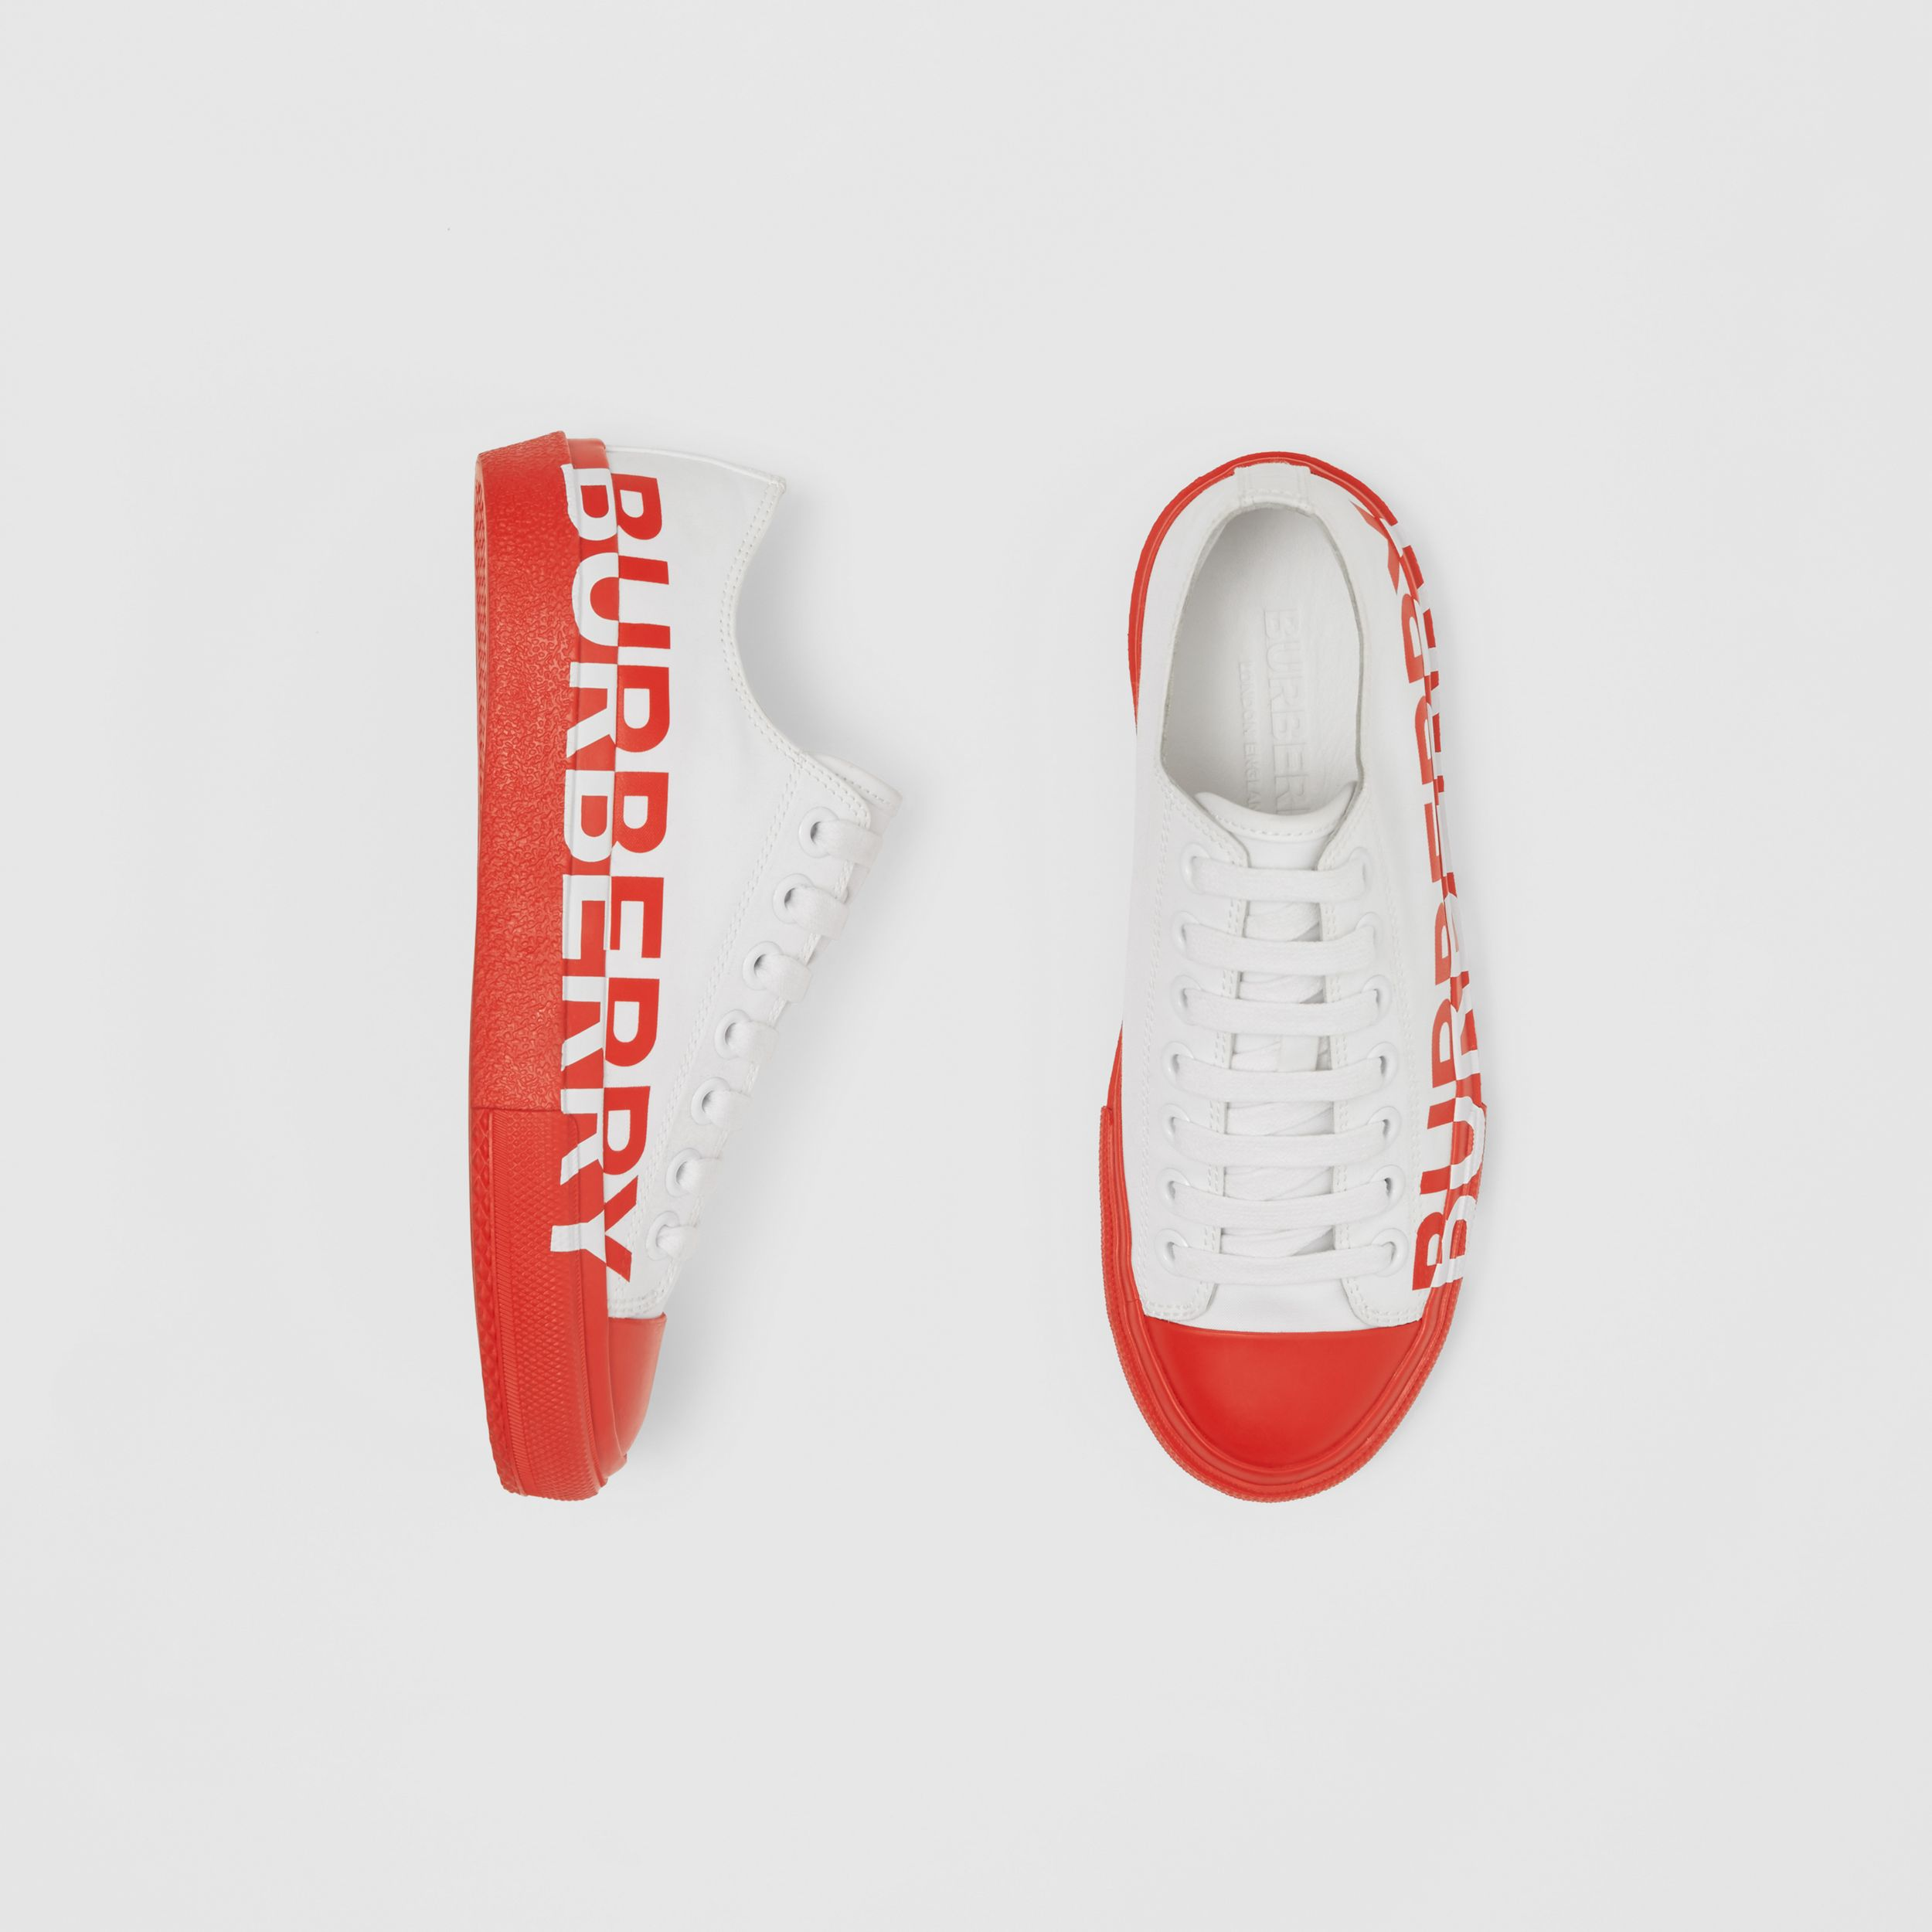 Logo Print Two-tone Cotton Gabardine Sneakers in Optic White/bright Red - Women | Burberry - 1